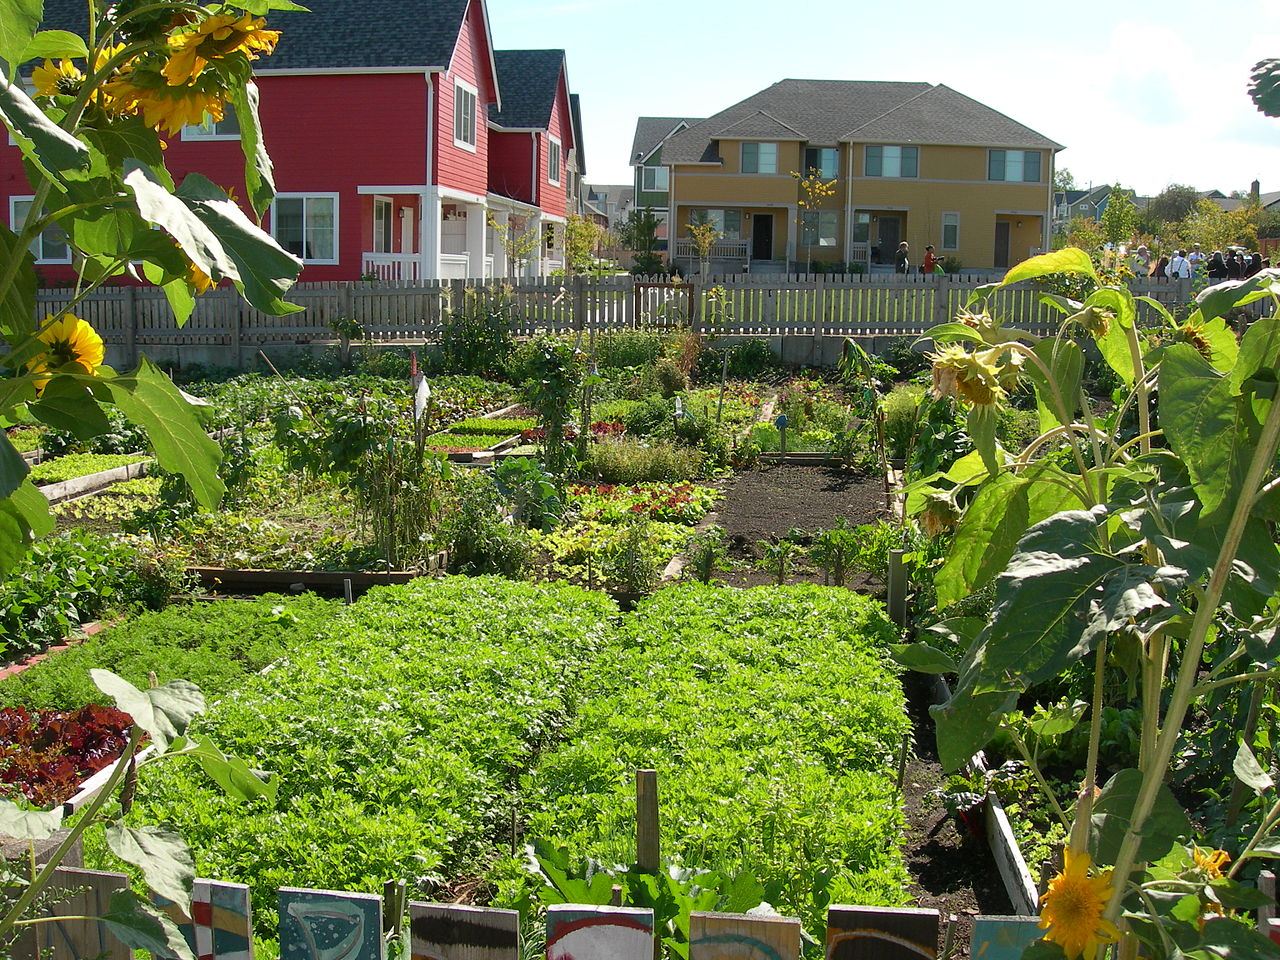 a community garden with different produce